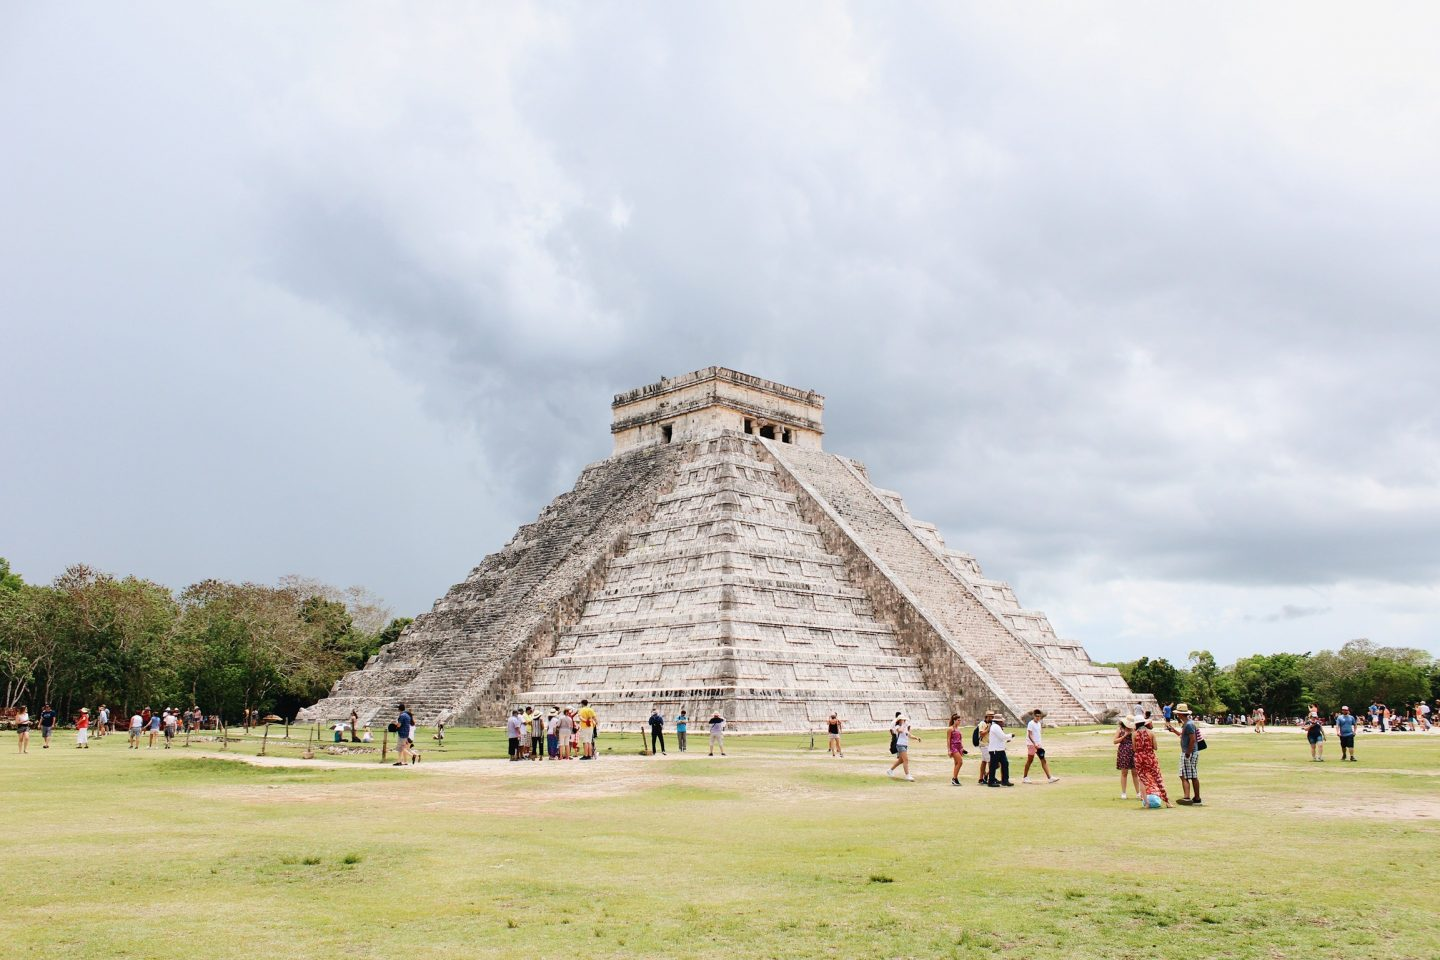 Visiting Chichen Itzá in Mexico!